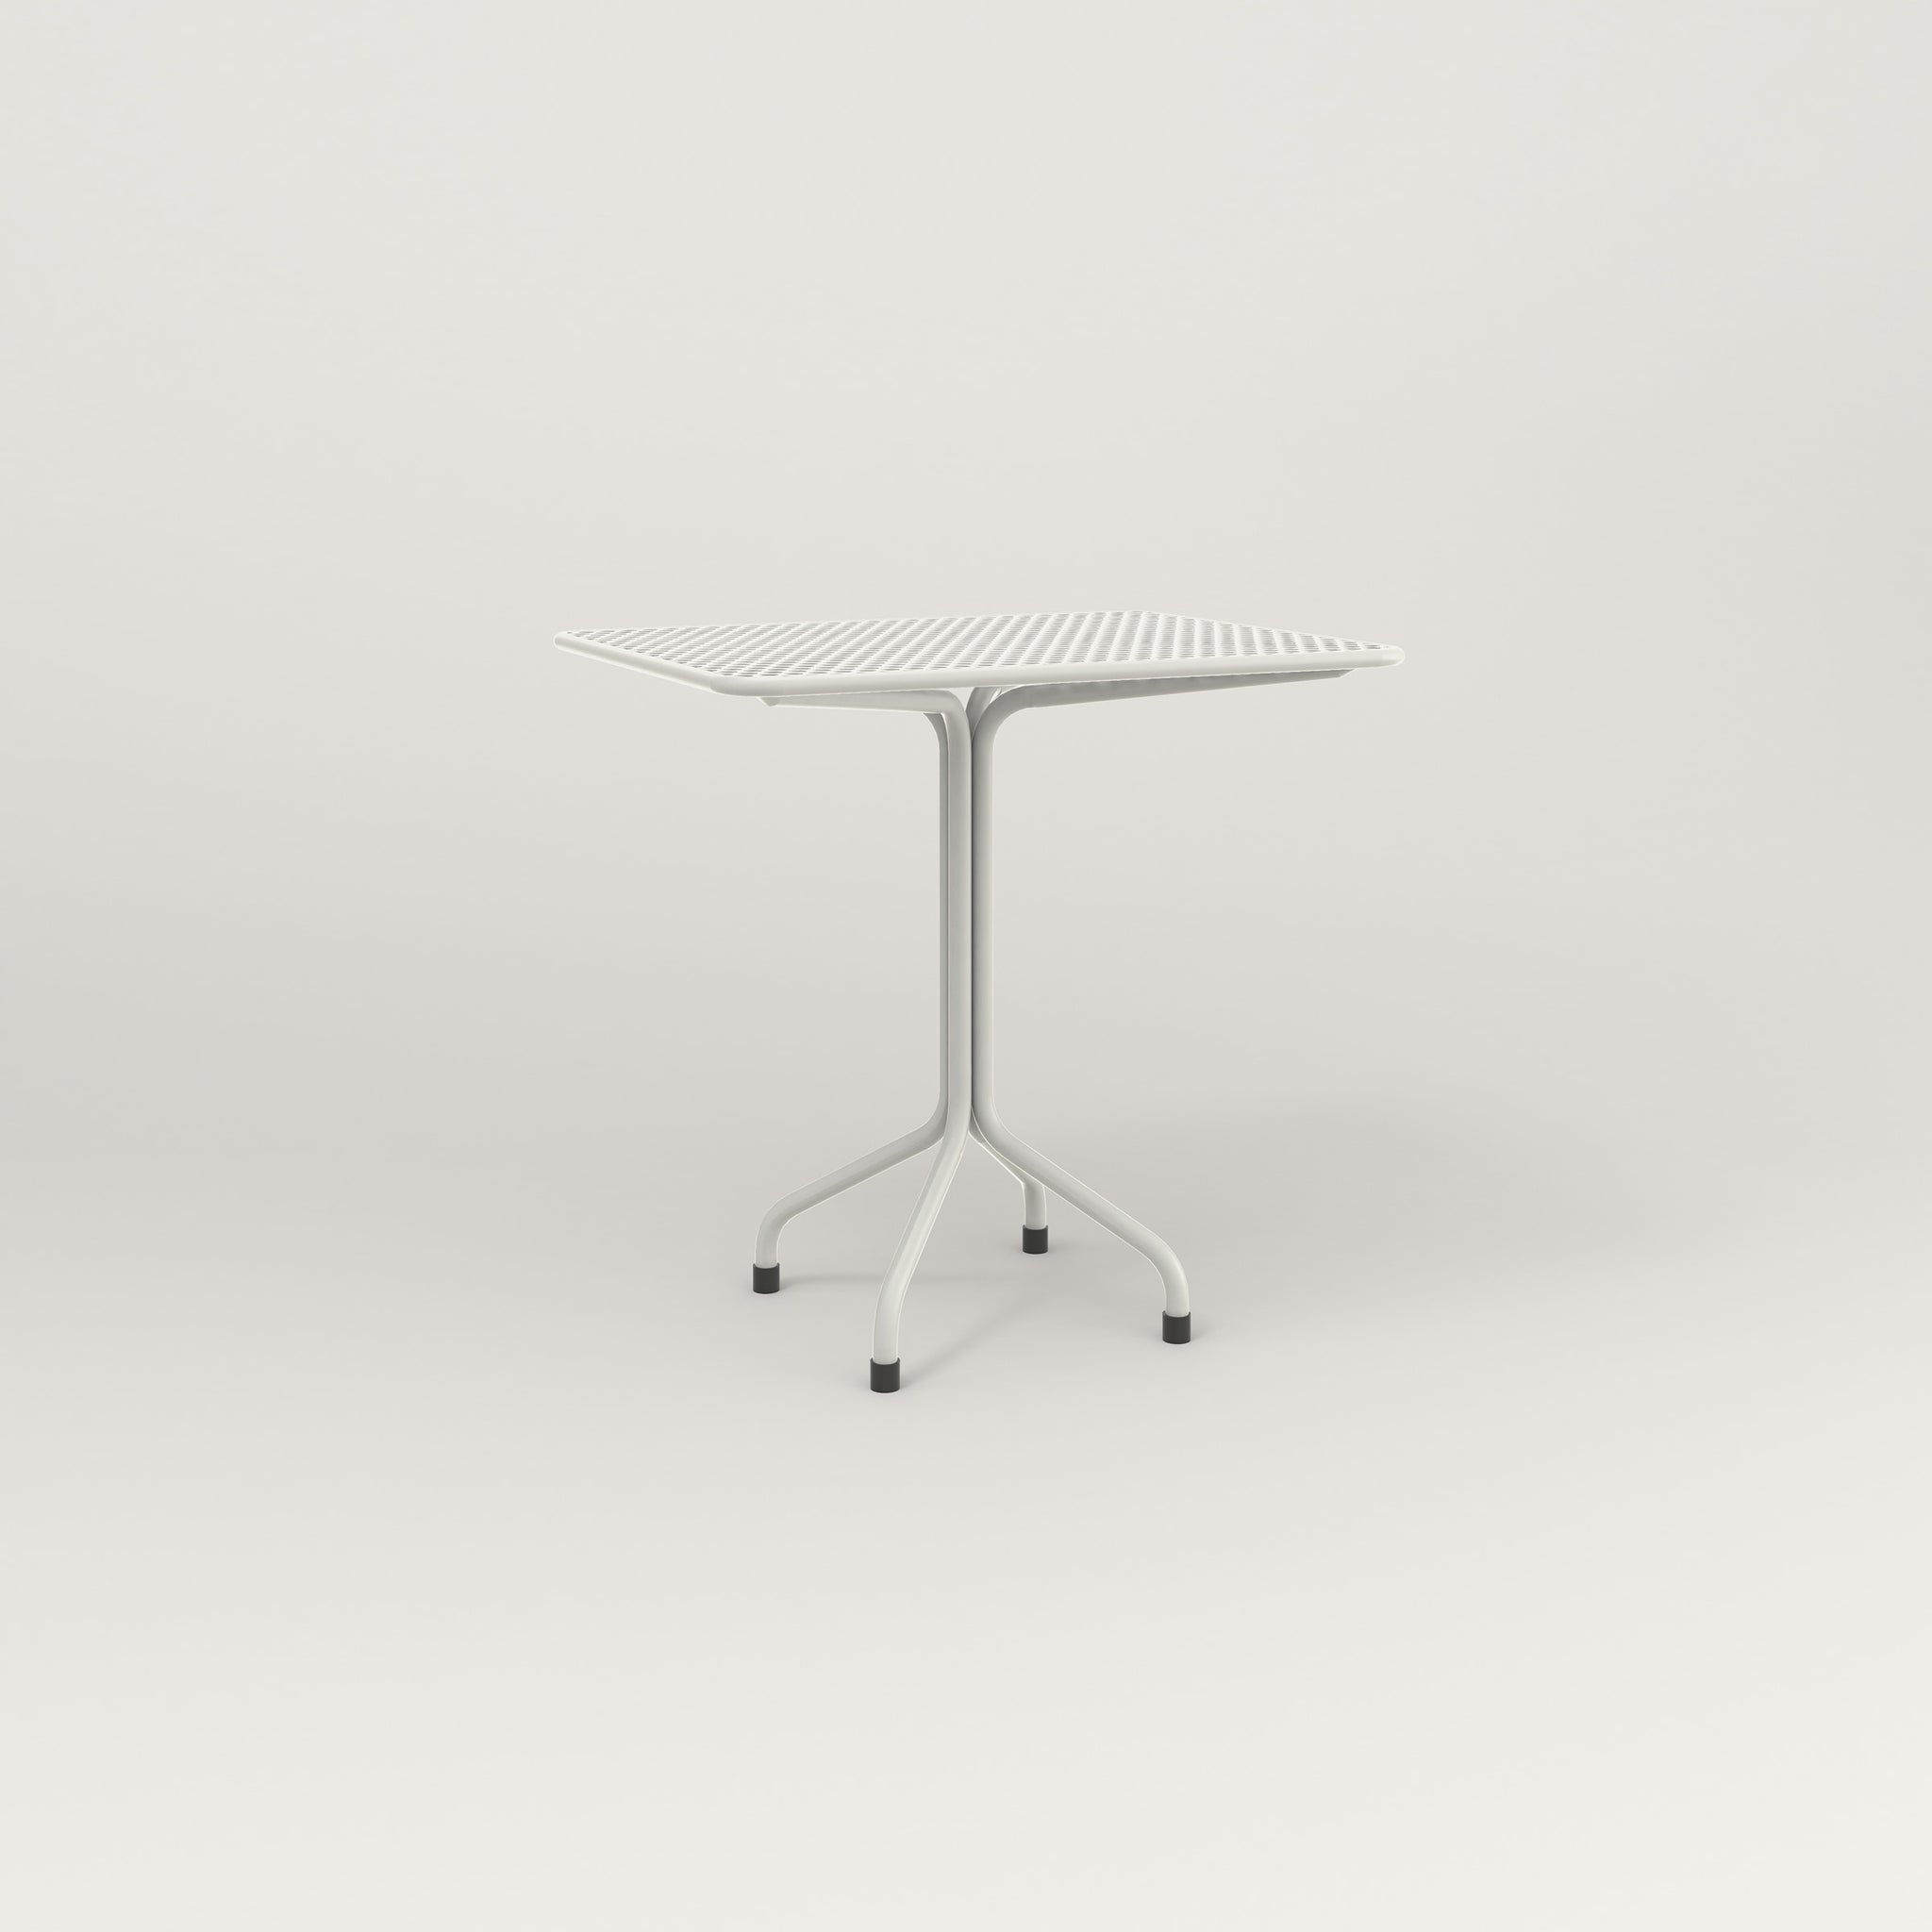 RAD Cafe Table, Rectangular Tube Four Point Base in perforated steel and white powder coat.